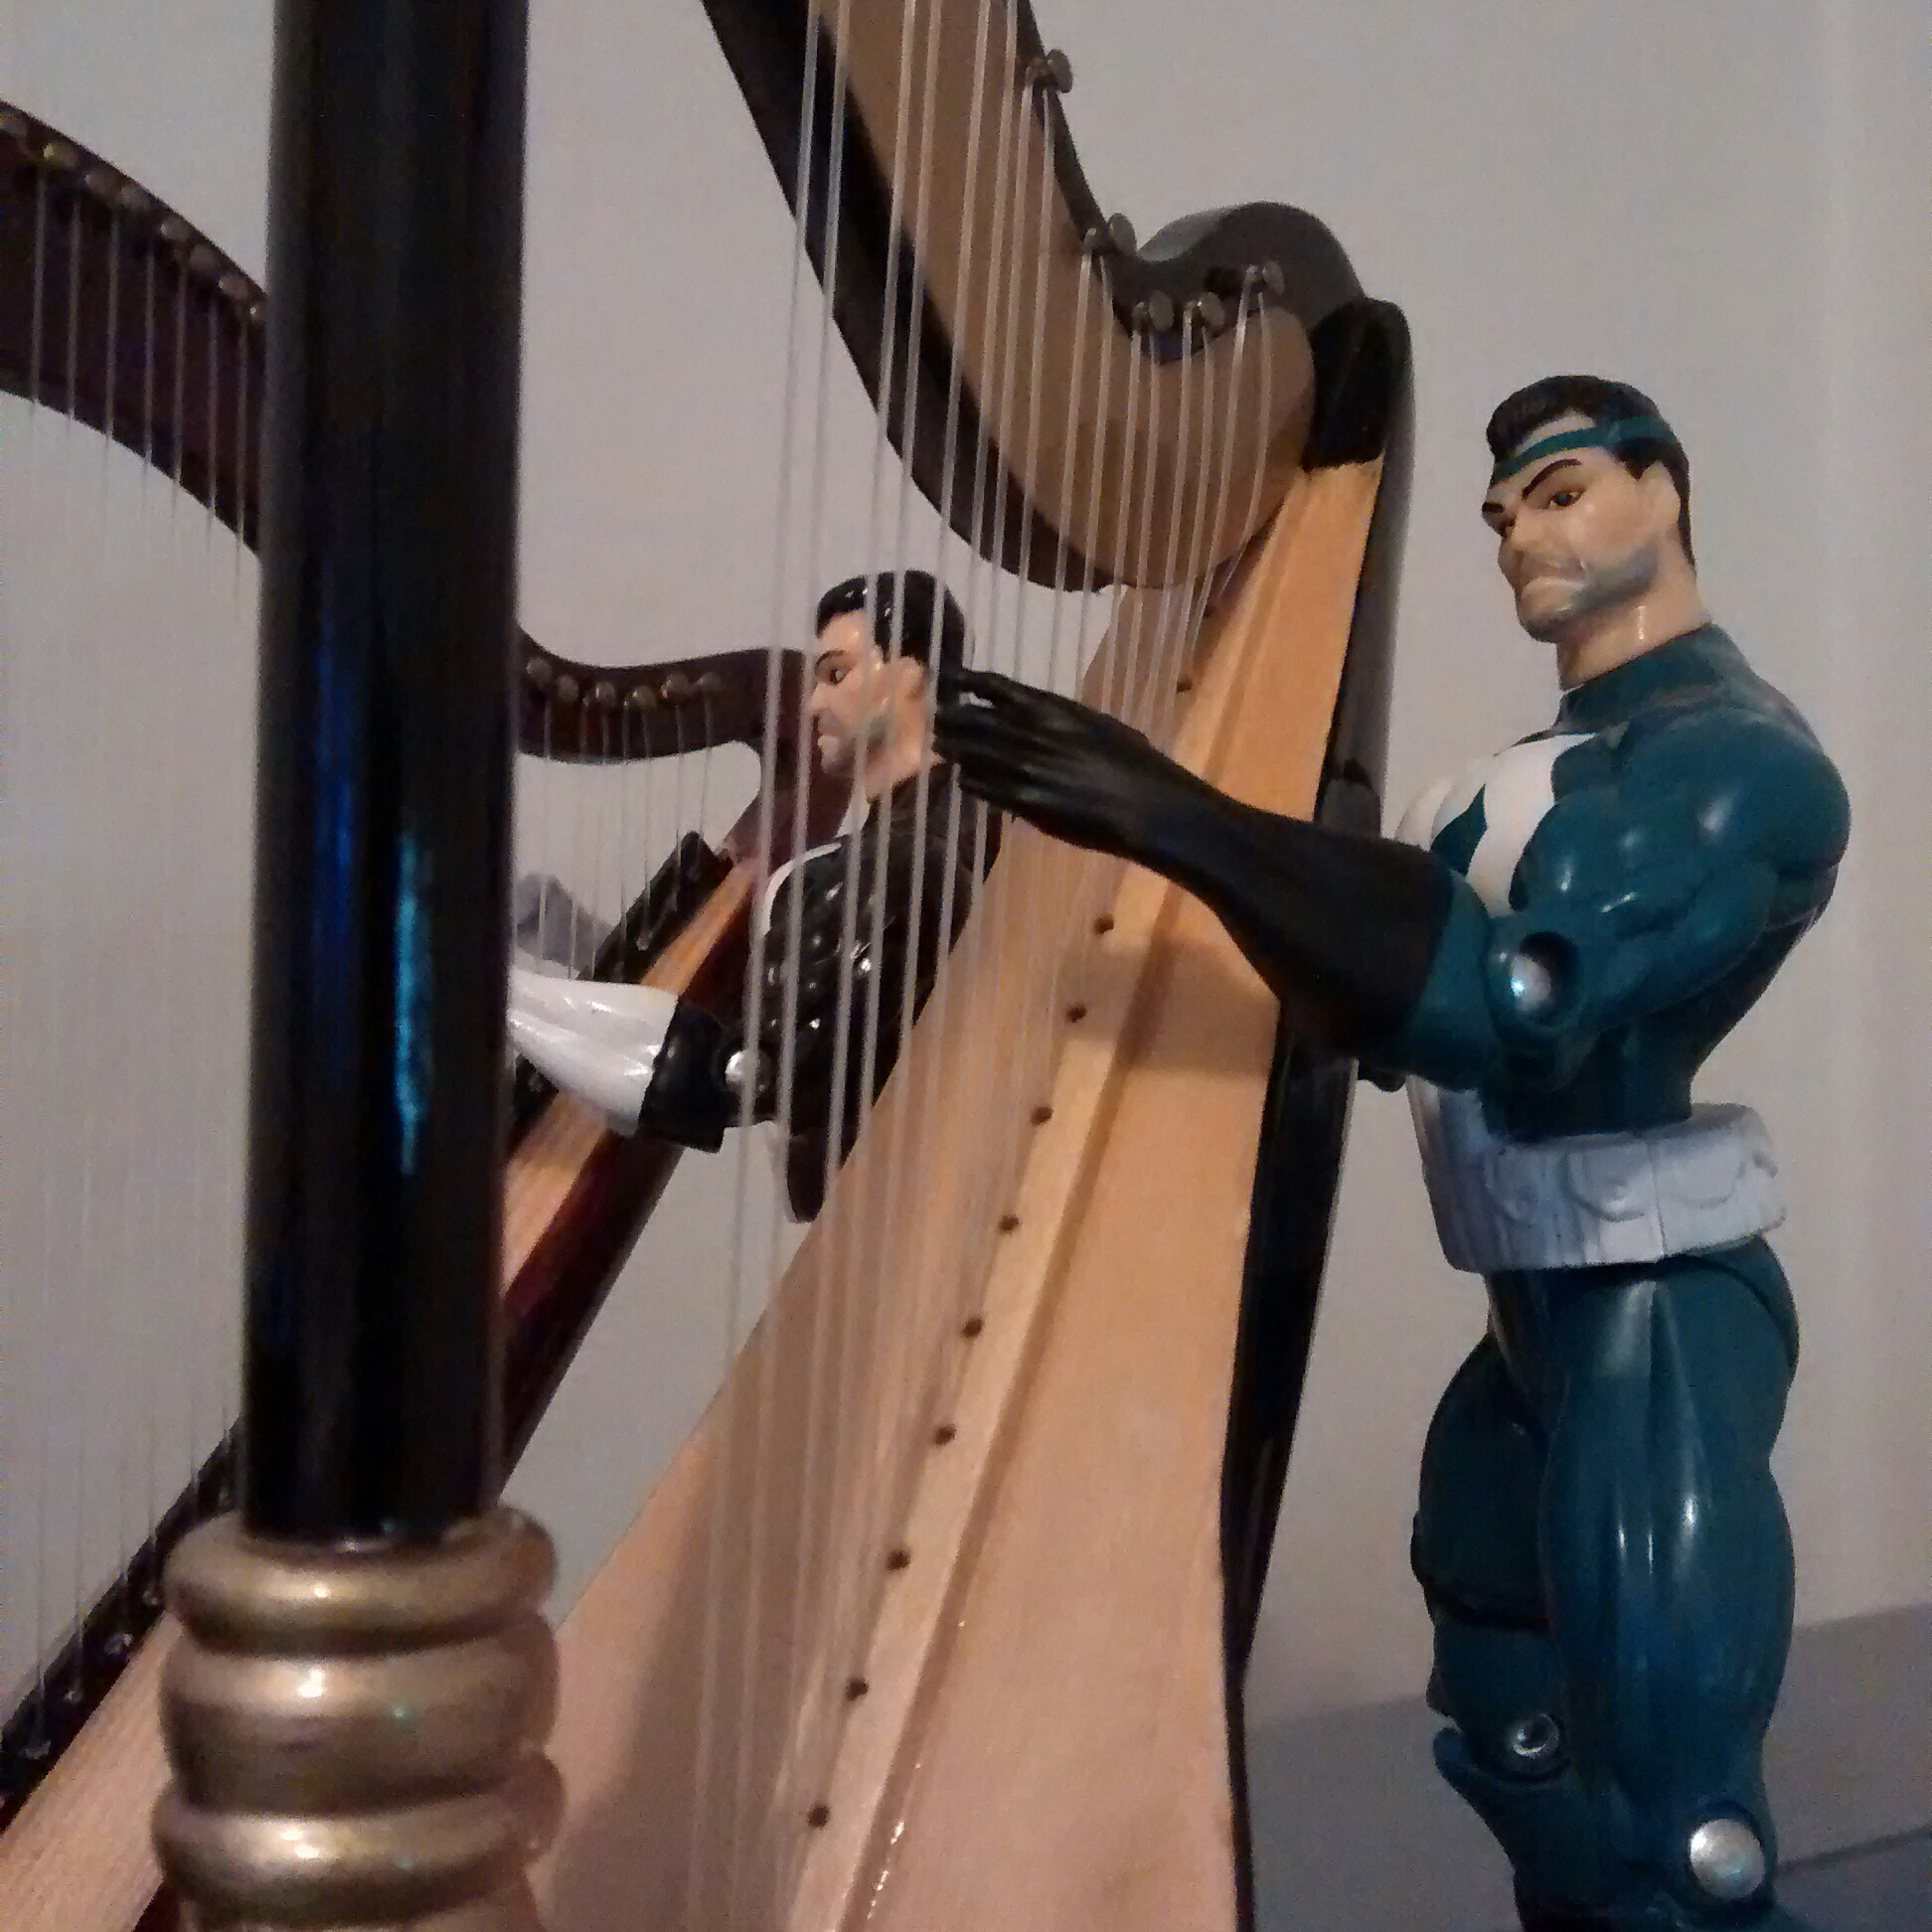 Frank's very pleased with the harp's sound.